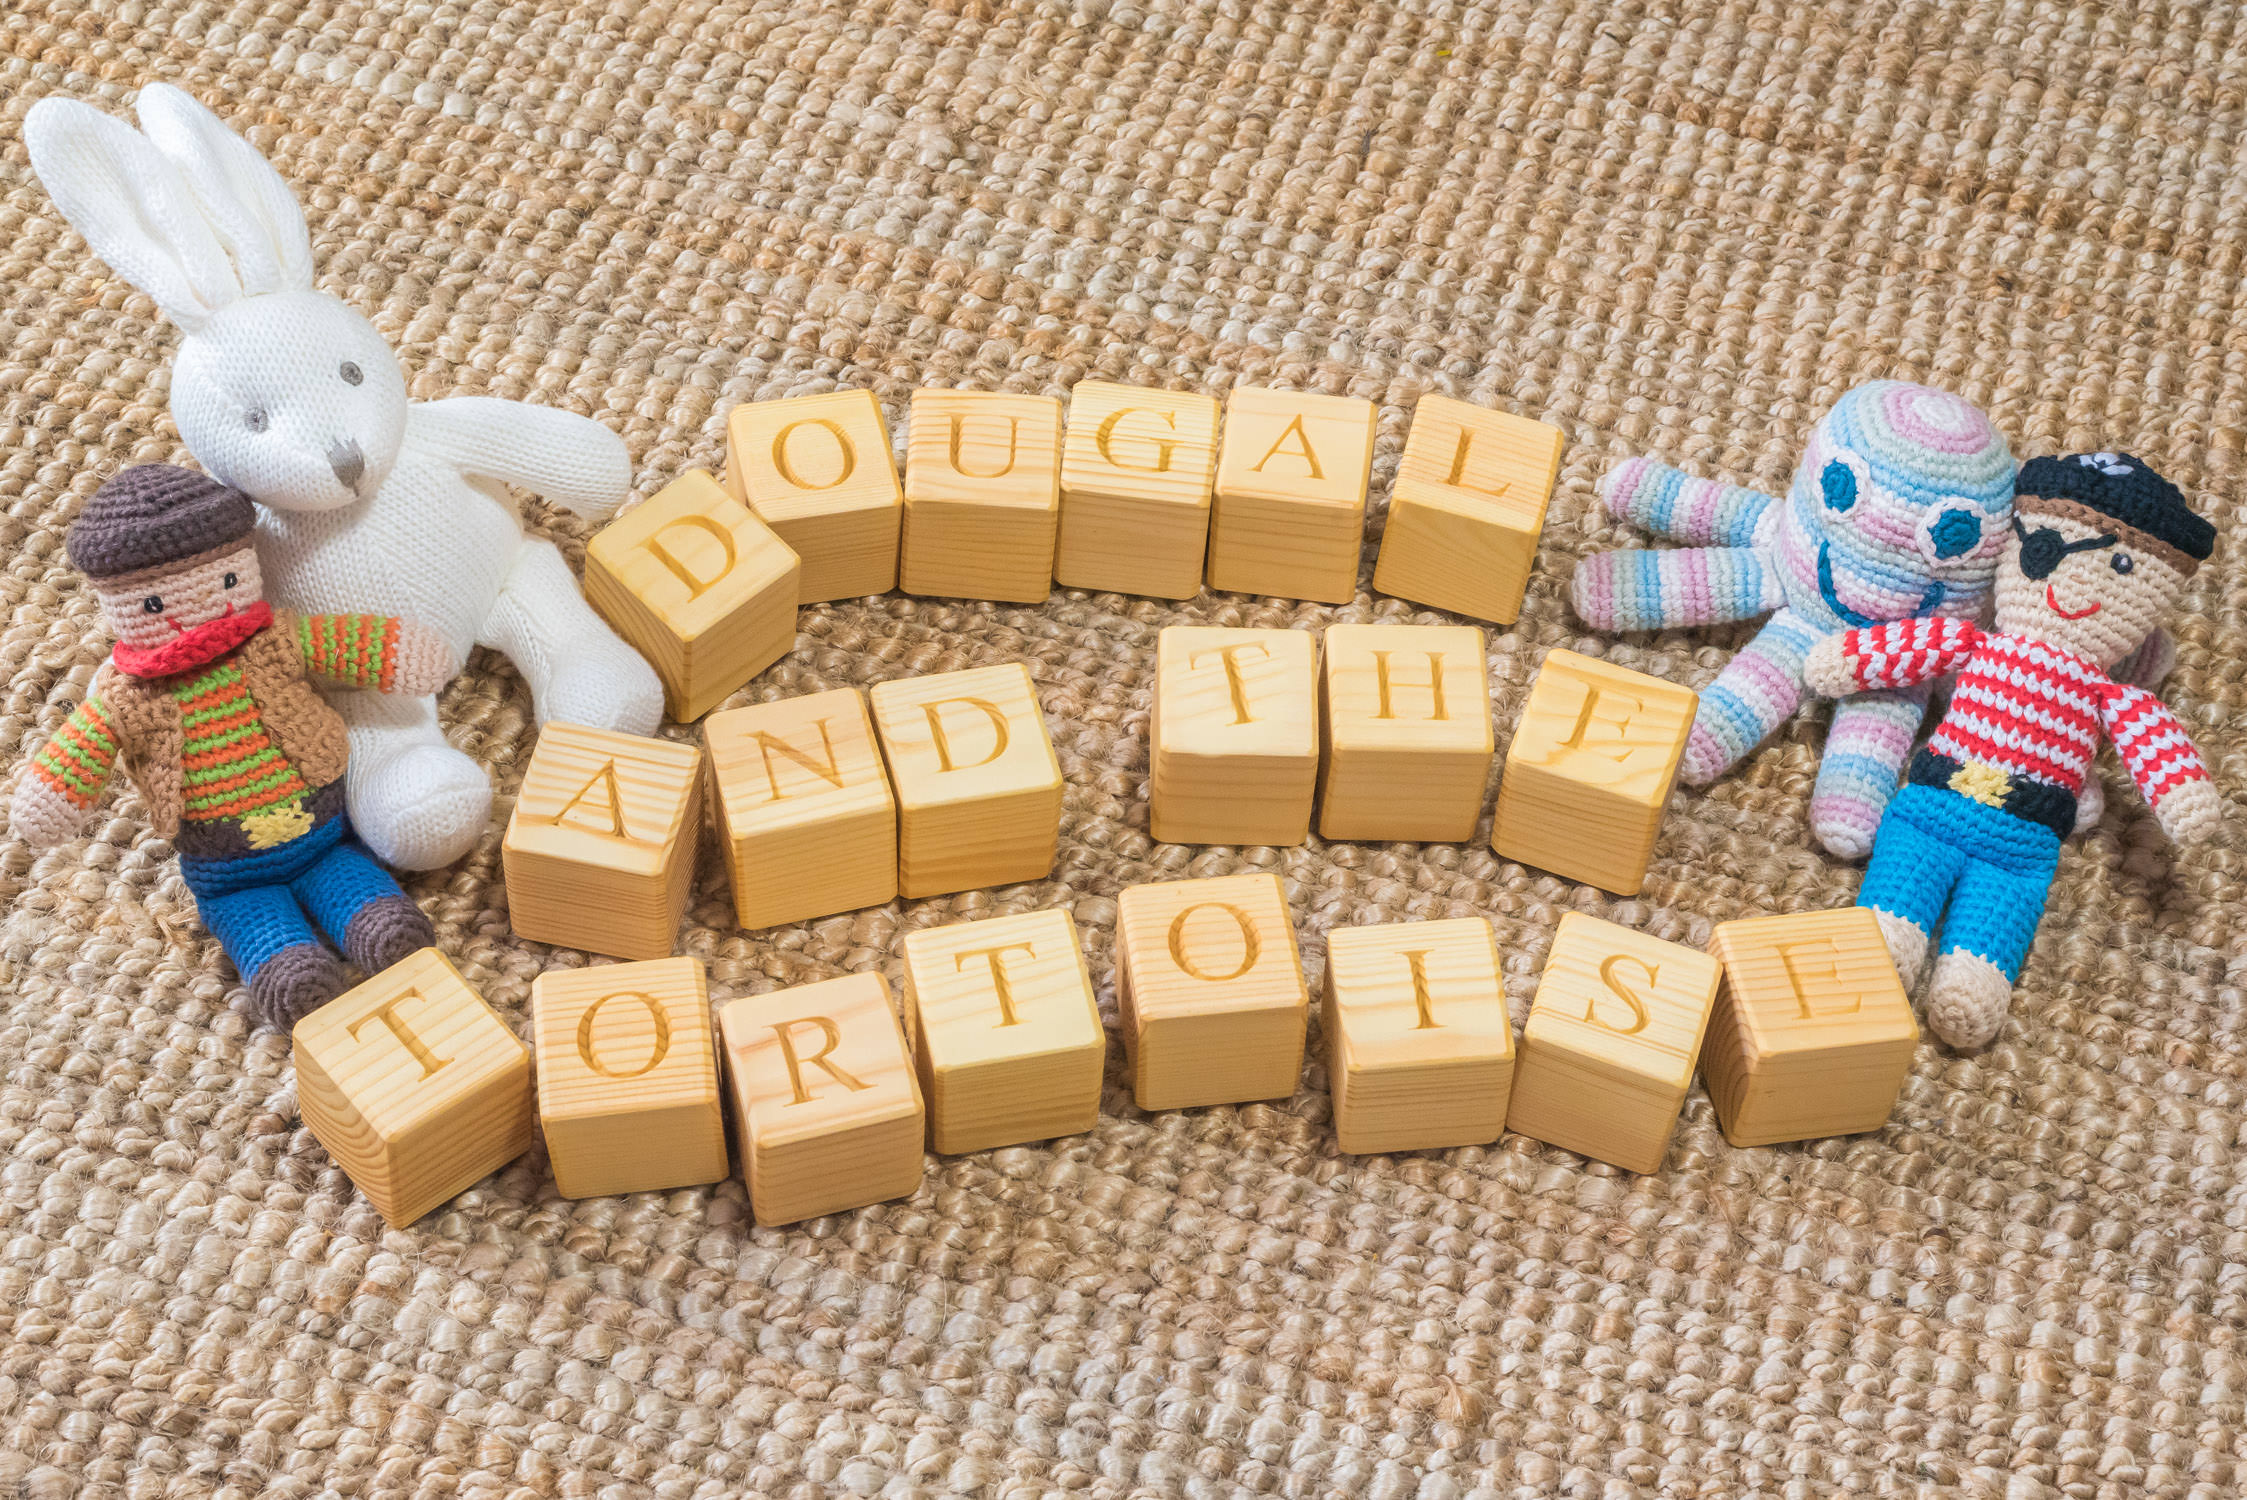 Children's wooden blocks with knitted toys